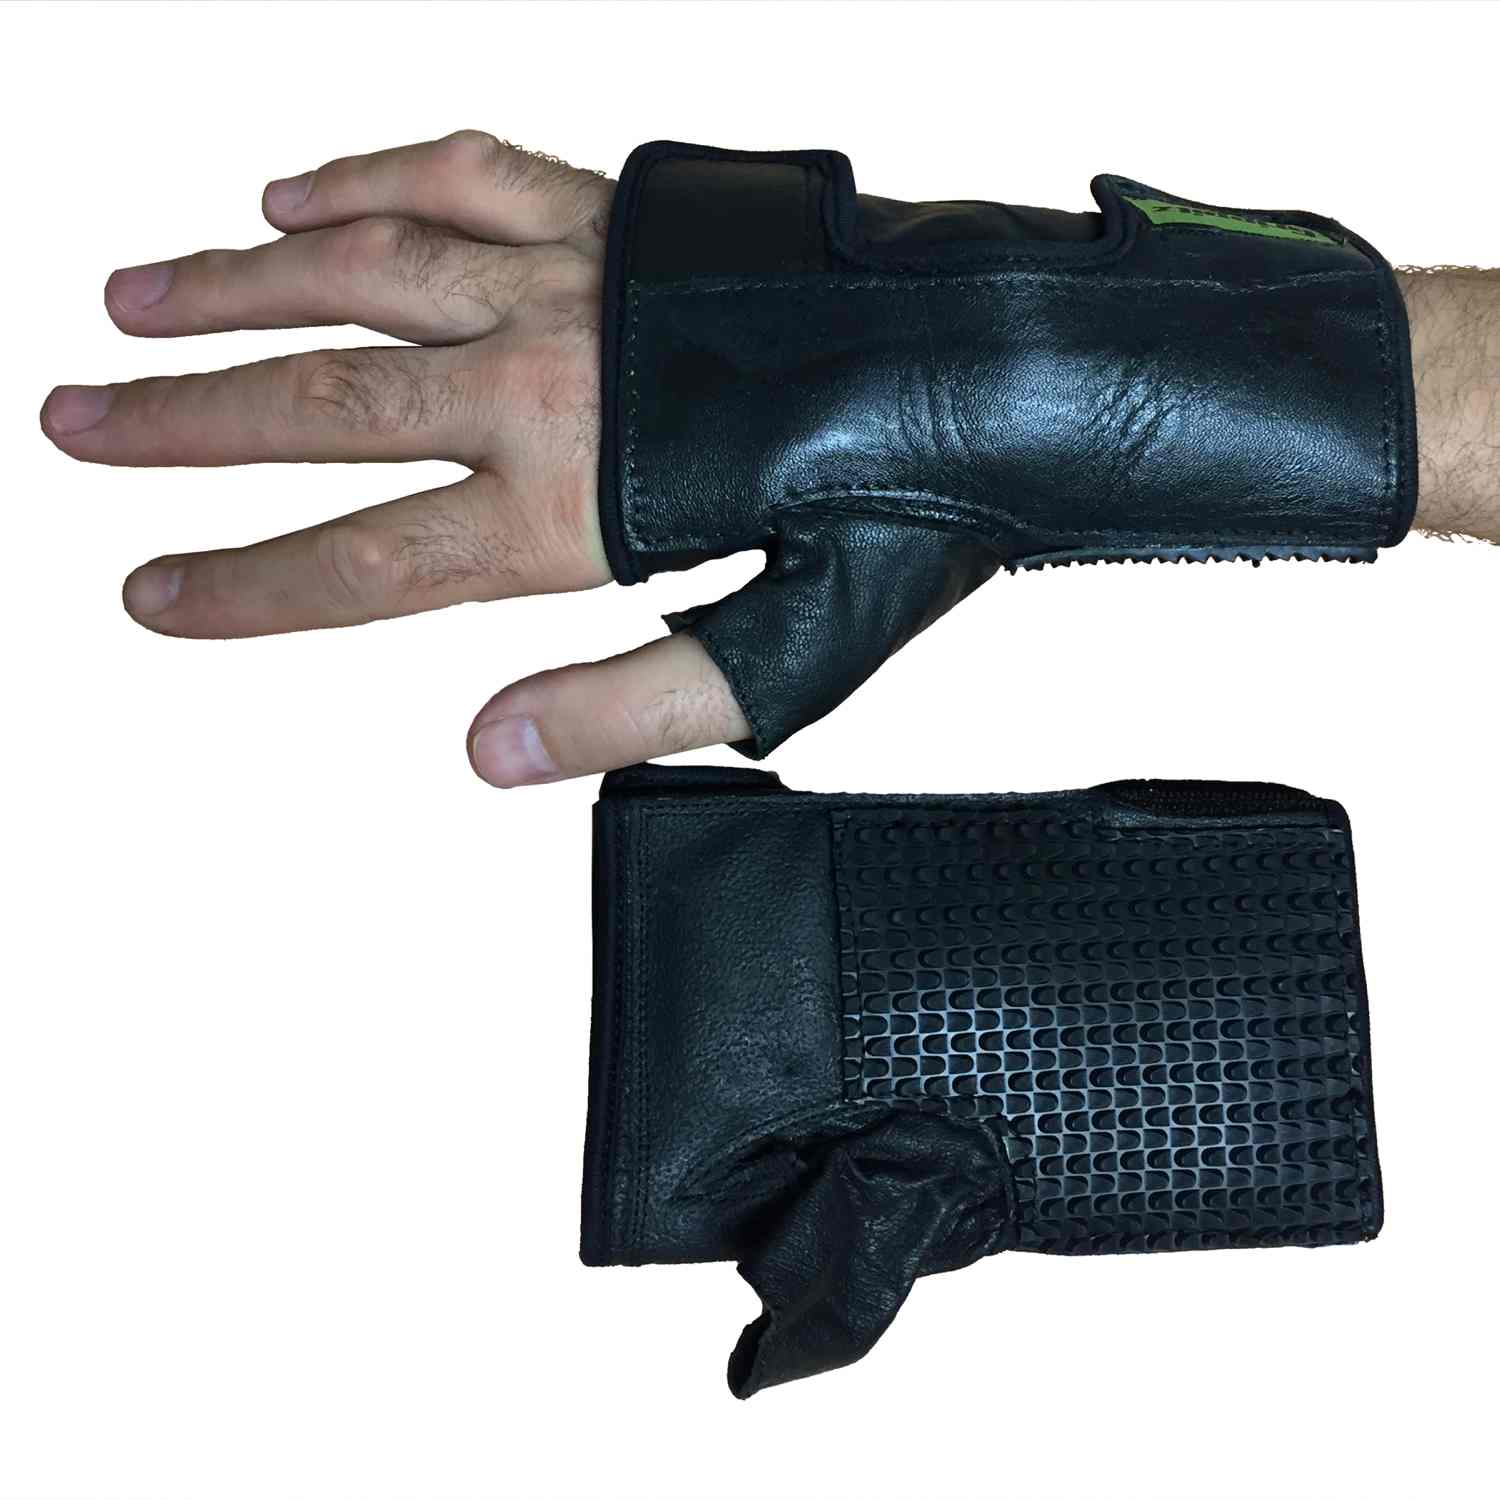 wheelchair push gloves - disabled hands , cerebral palsy aids , stroke aids , stroke survivor , stroke gadgets , stroke rehabilitation , quad aids , quadriplegic aids , quadriplegic gadgets , quadriplegic gloves , disability aids , wheelchair gym equipment , aids for disabled hands , grip aids , gripping aids , hand mobility aids , assistive devices for hands , handicapped aids , hand aids